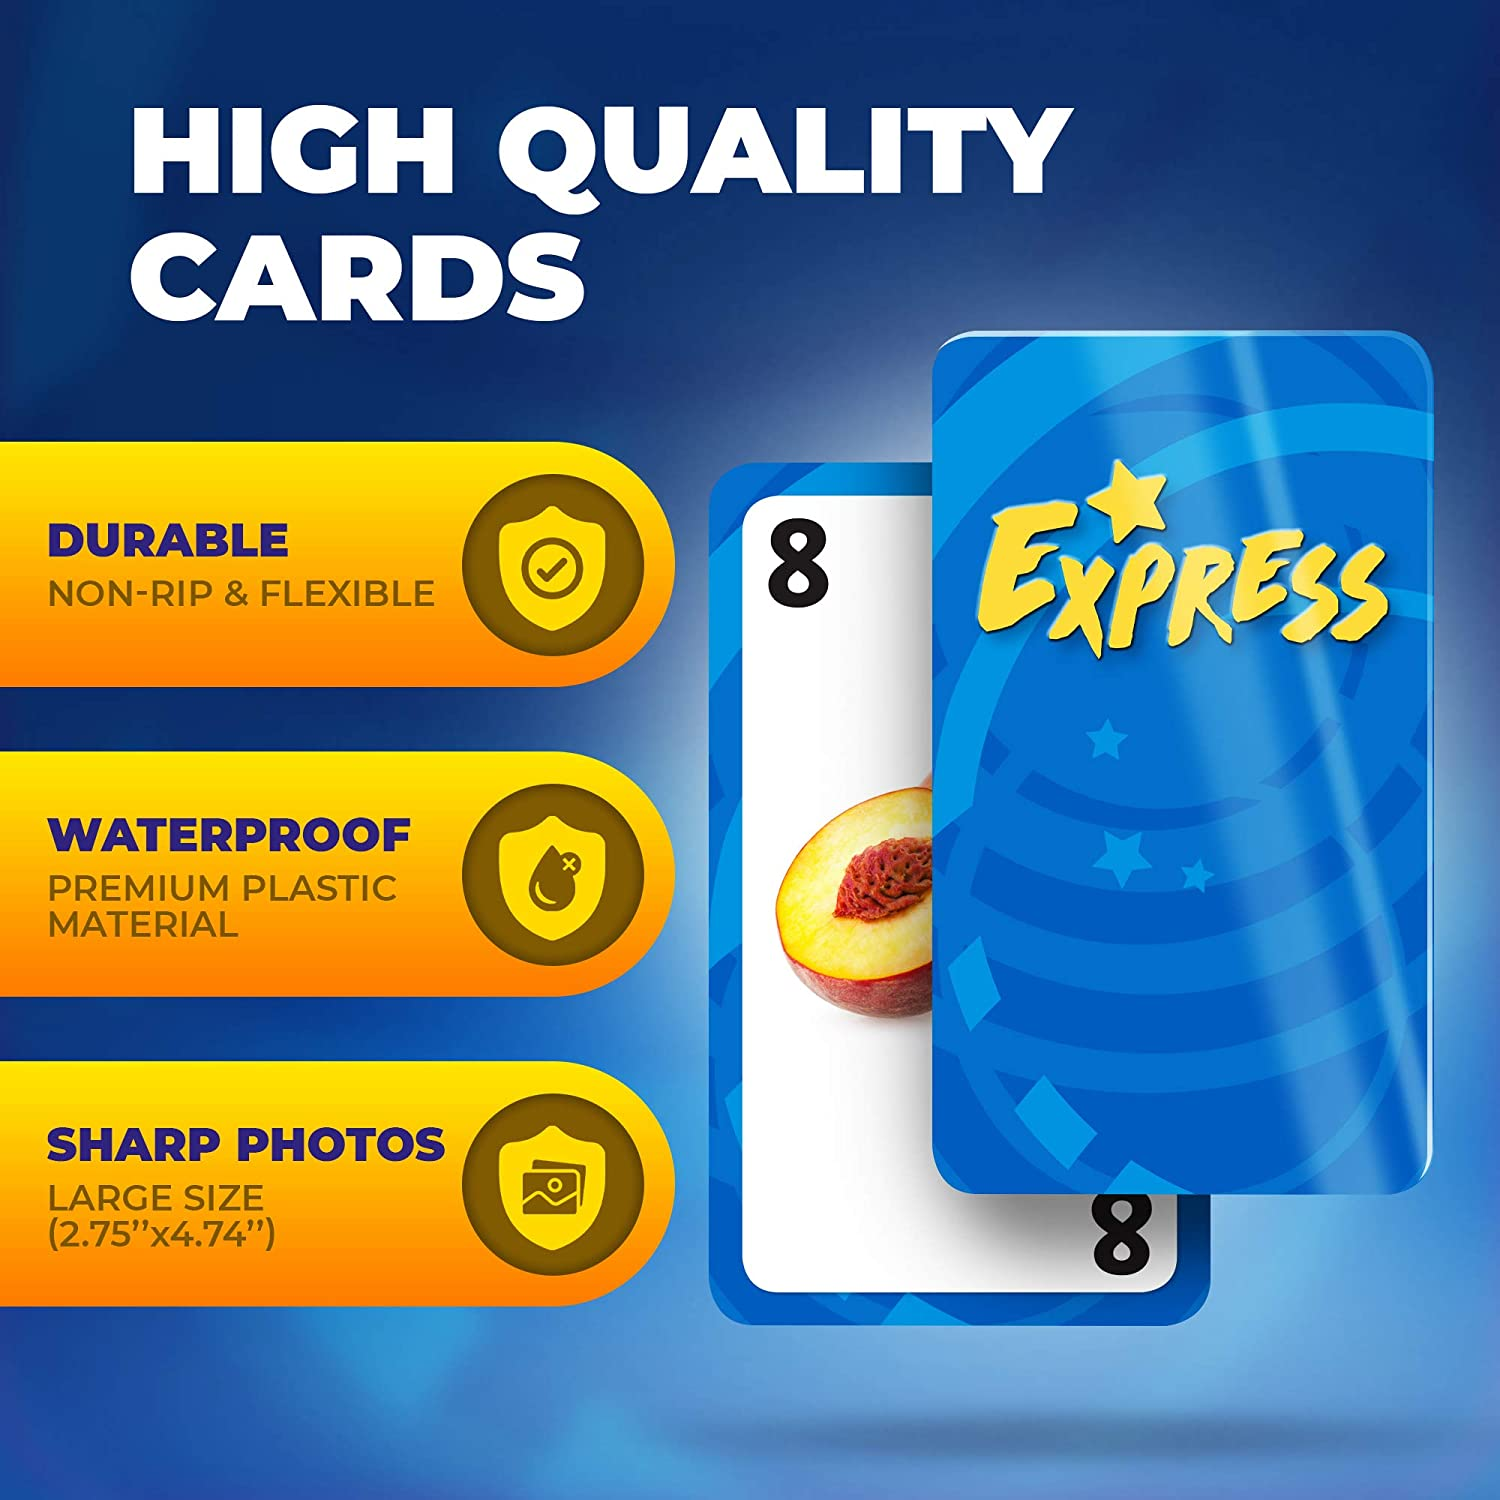 Early Education 4 Categories ADA Autism Realistic Photos 52 Flash Cards Children Non-Rip Material for Kids 1 Professional Extension learing English Unique Speech Therapy Fun Card Game